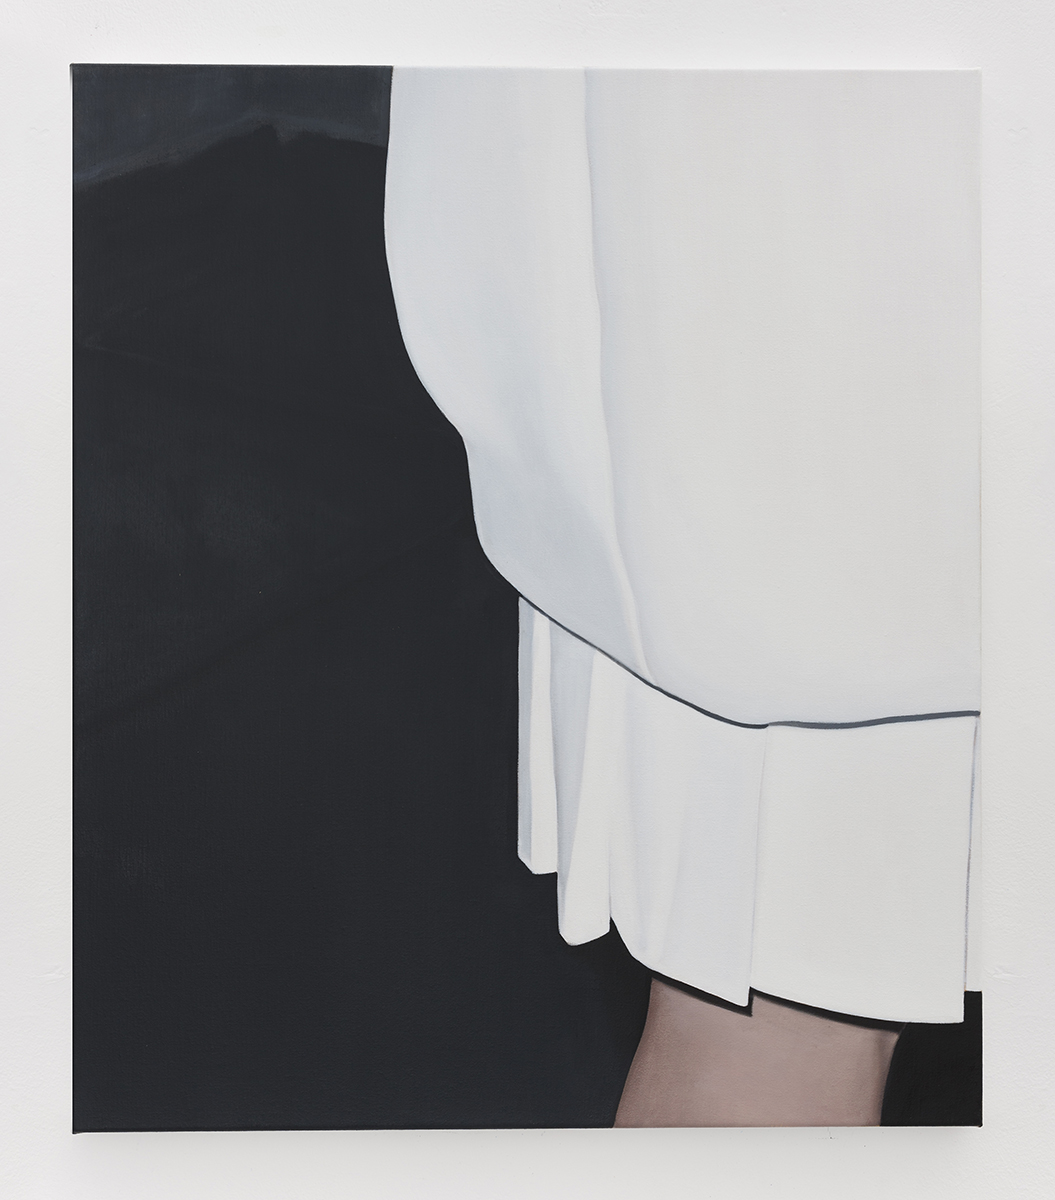 White Dress I | 2018 | oil on linen | 70 x 60 cm | 27.6 x 23.6 in | Private Collection | Photo by Lee Welch